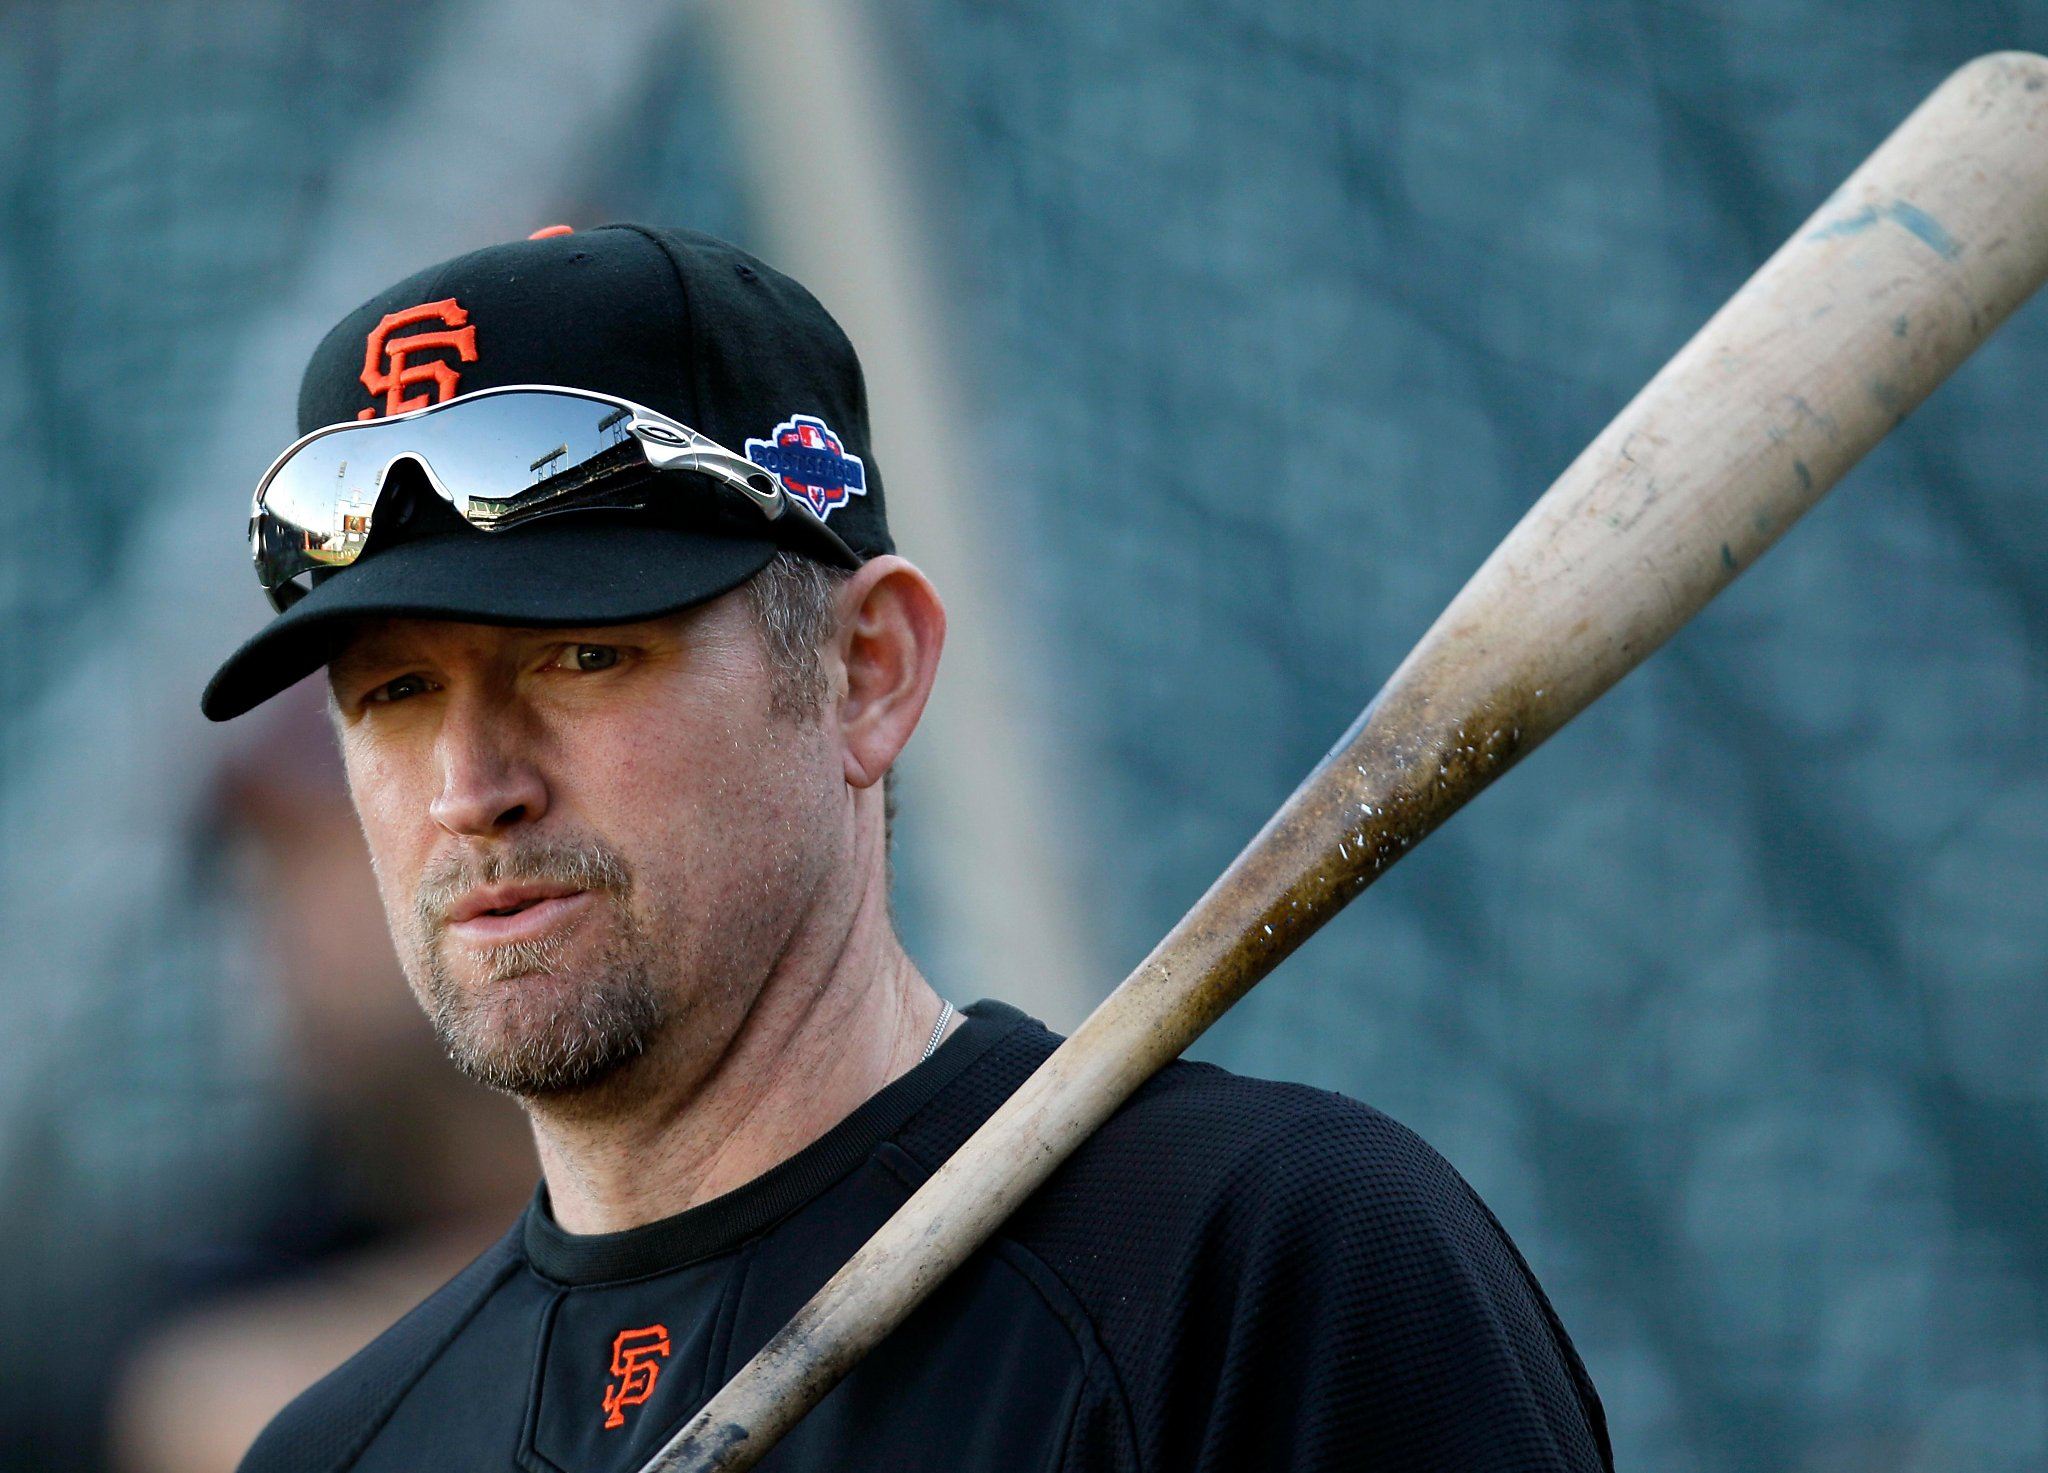 Giants tell Aubrey Huff he will not be invited to 2010 reunion due to tweets